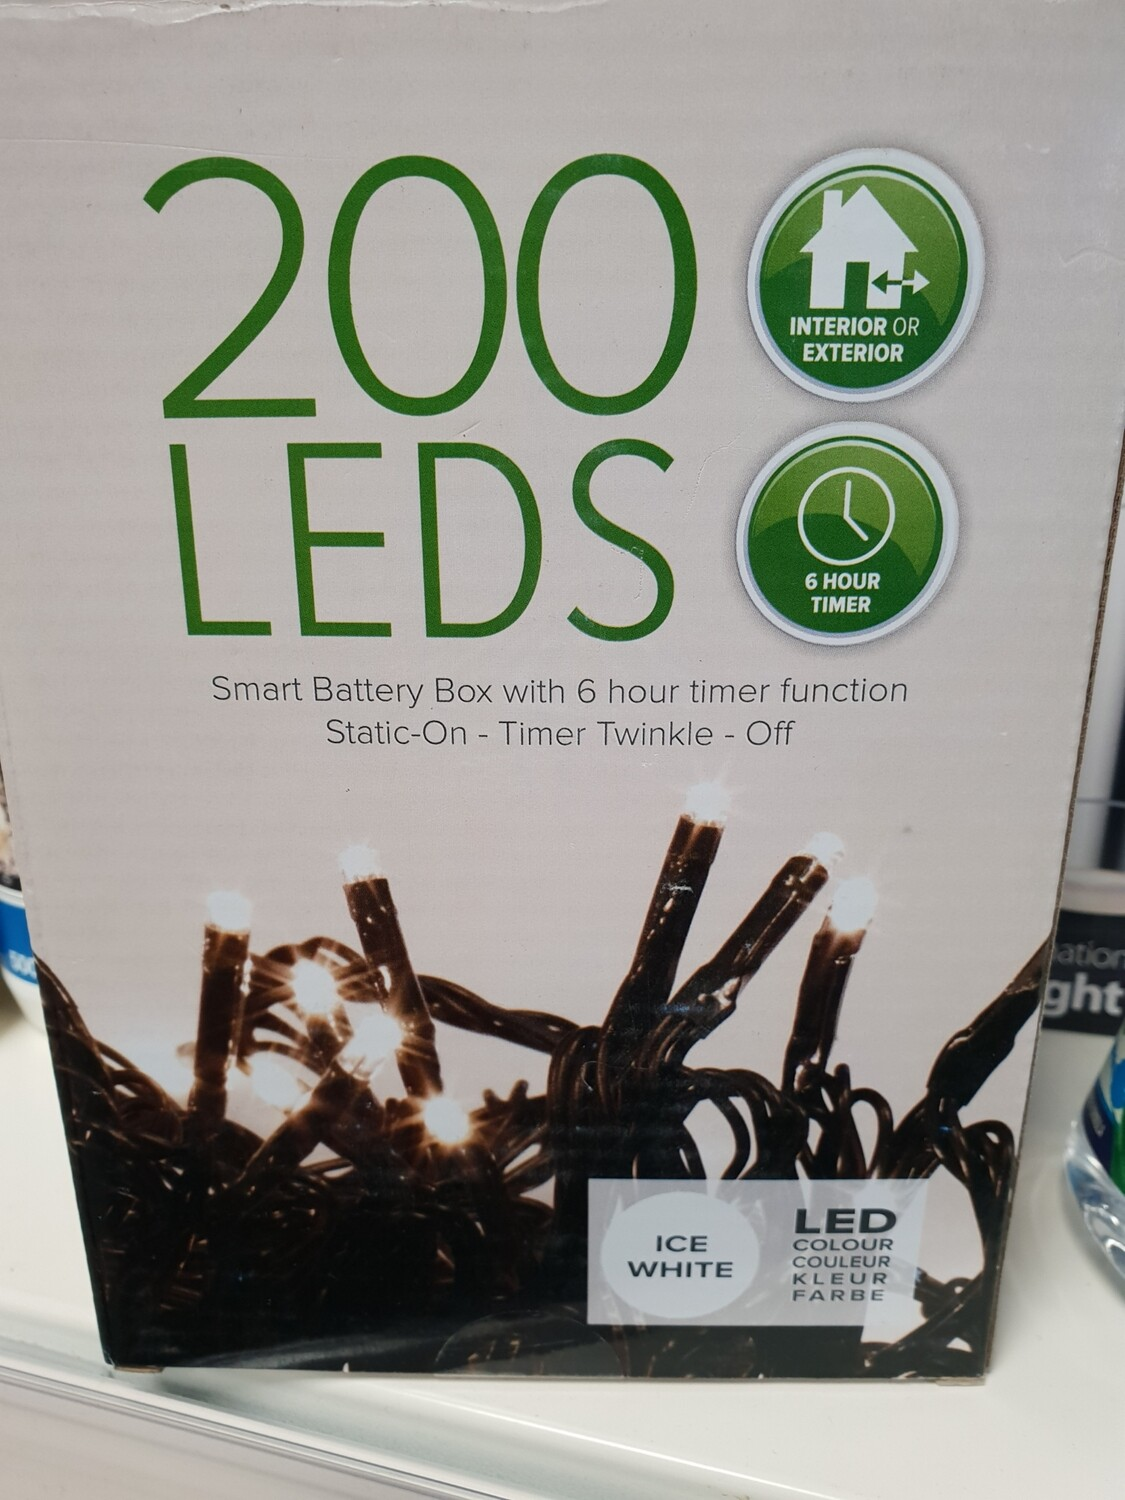 LED LIGHTS 200